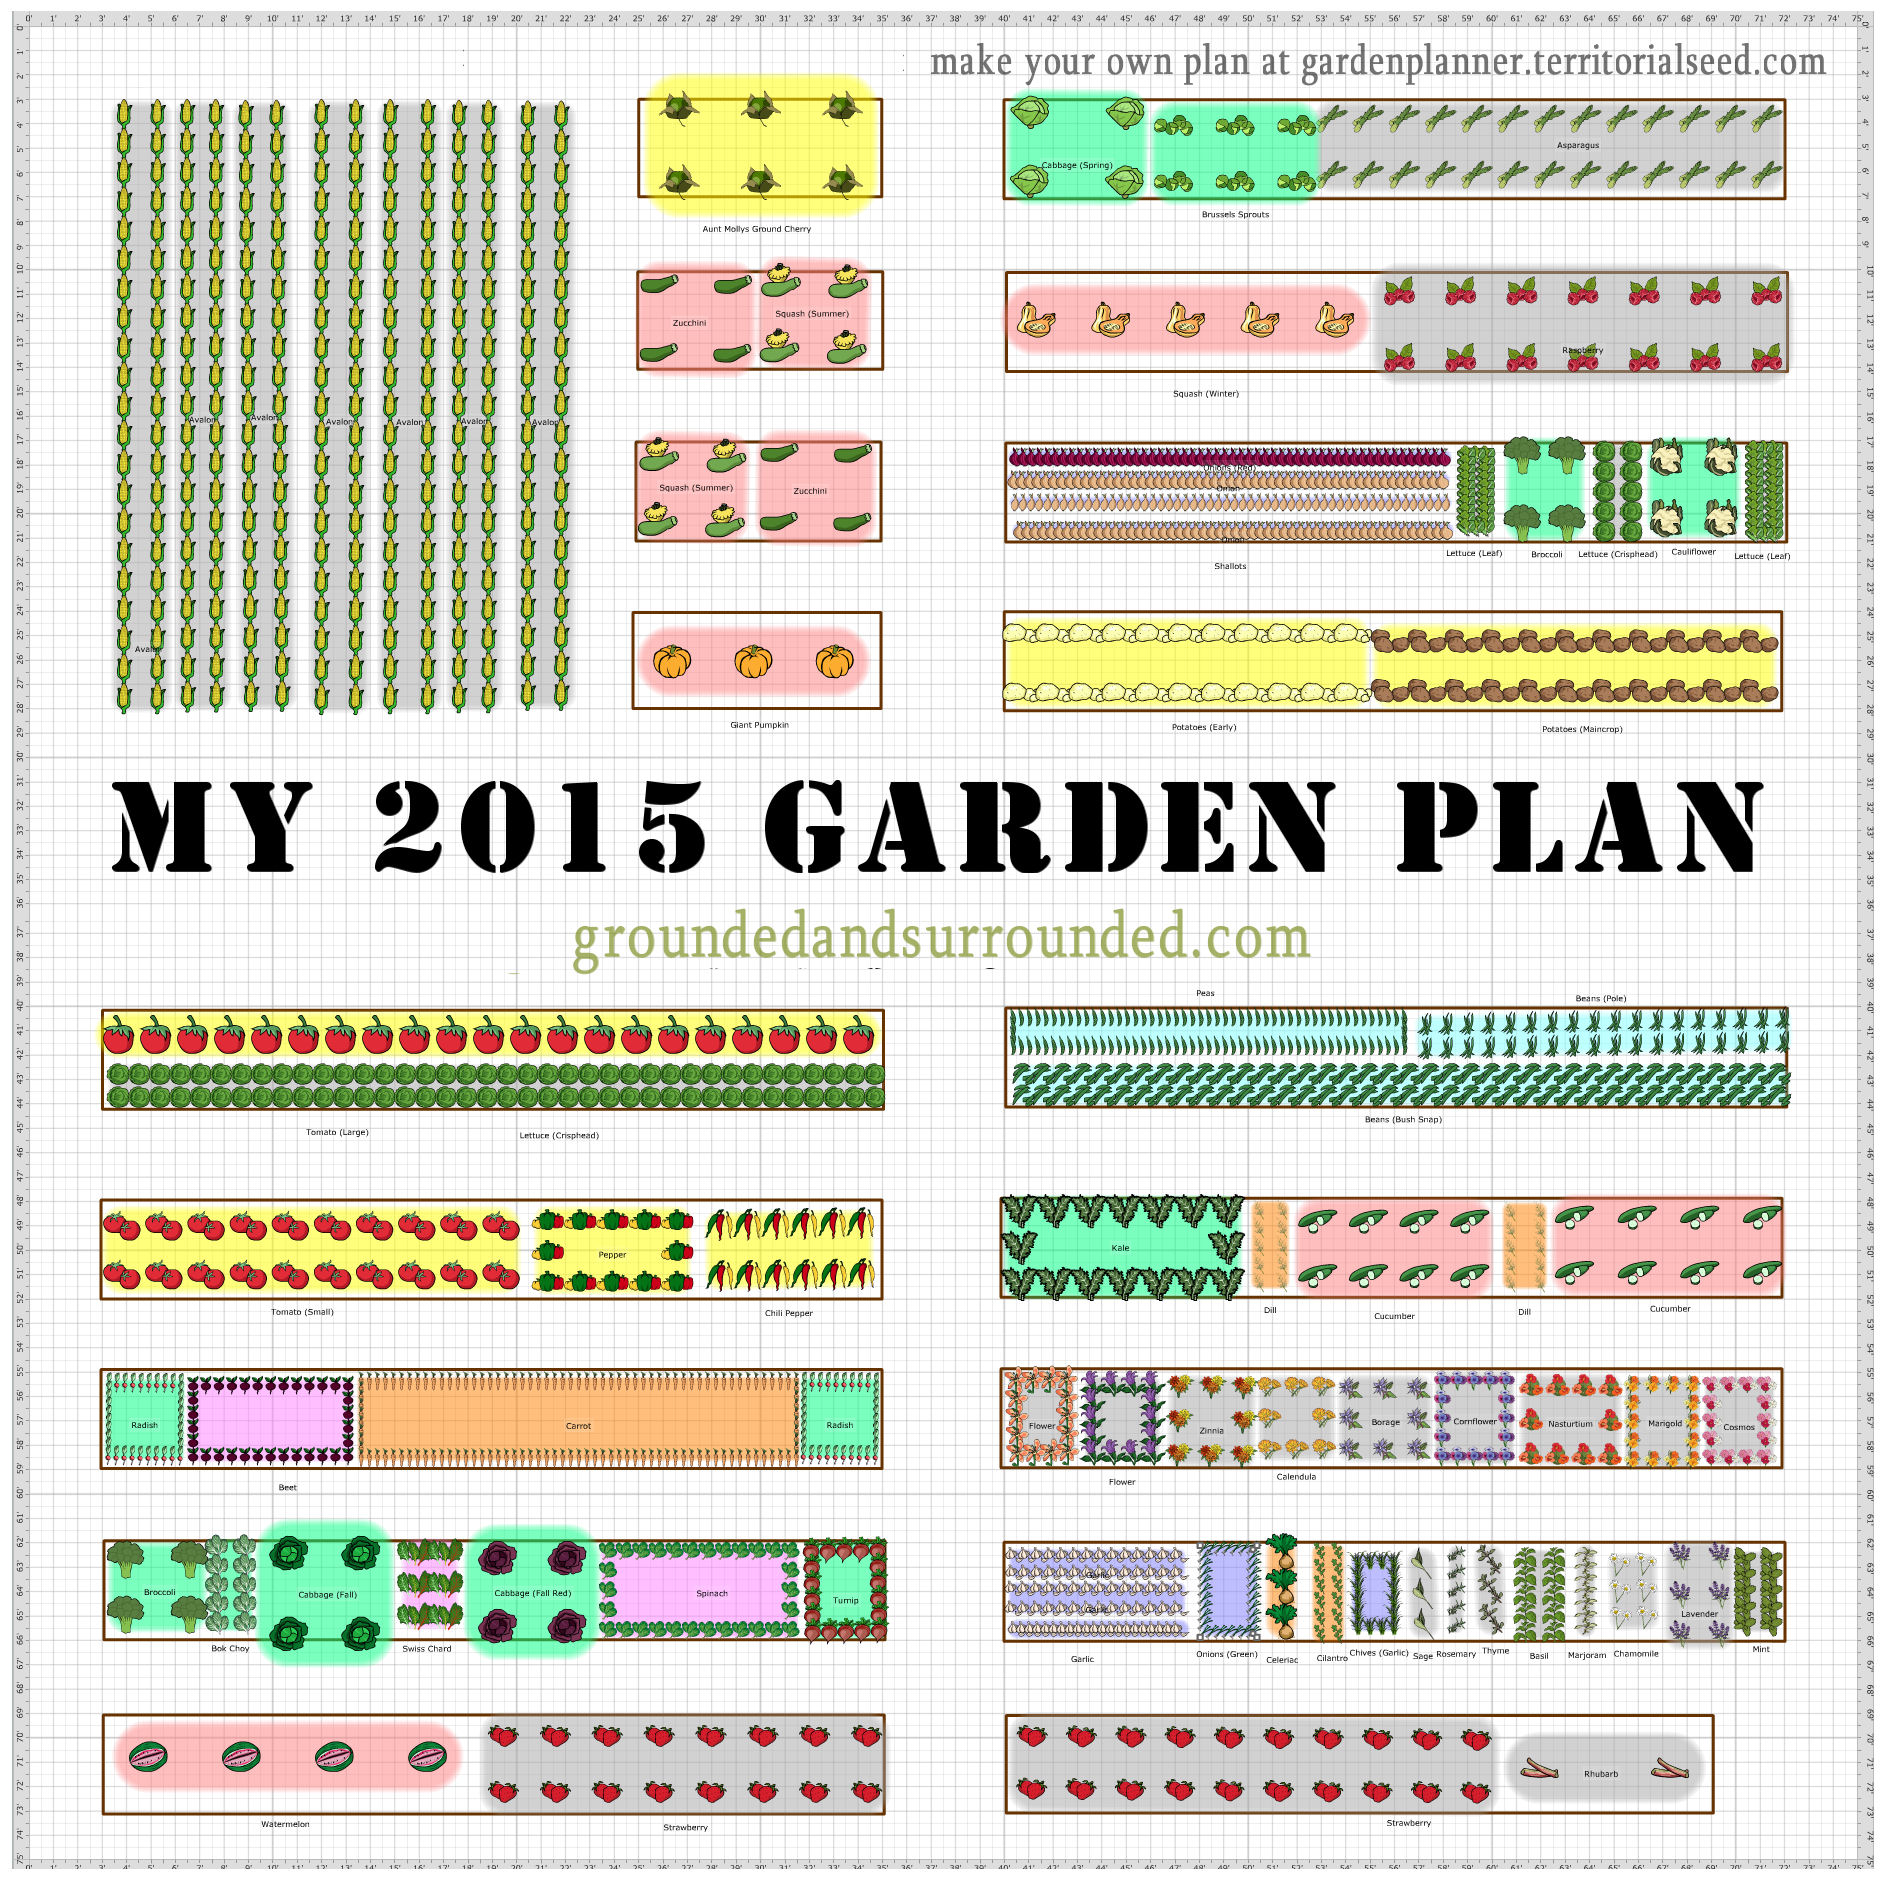 My 5 000 sq ft vegetable garden plan grounded surrounded for Vegetable garden layout